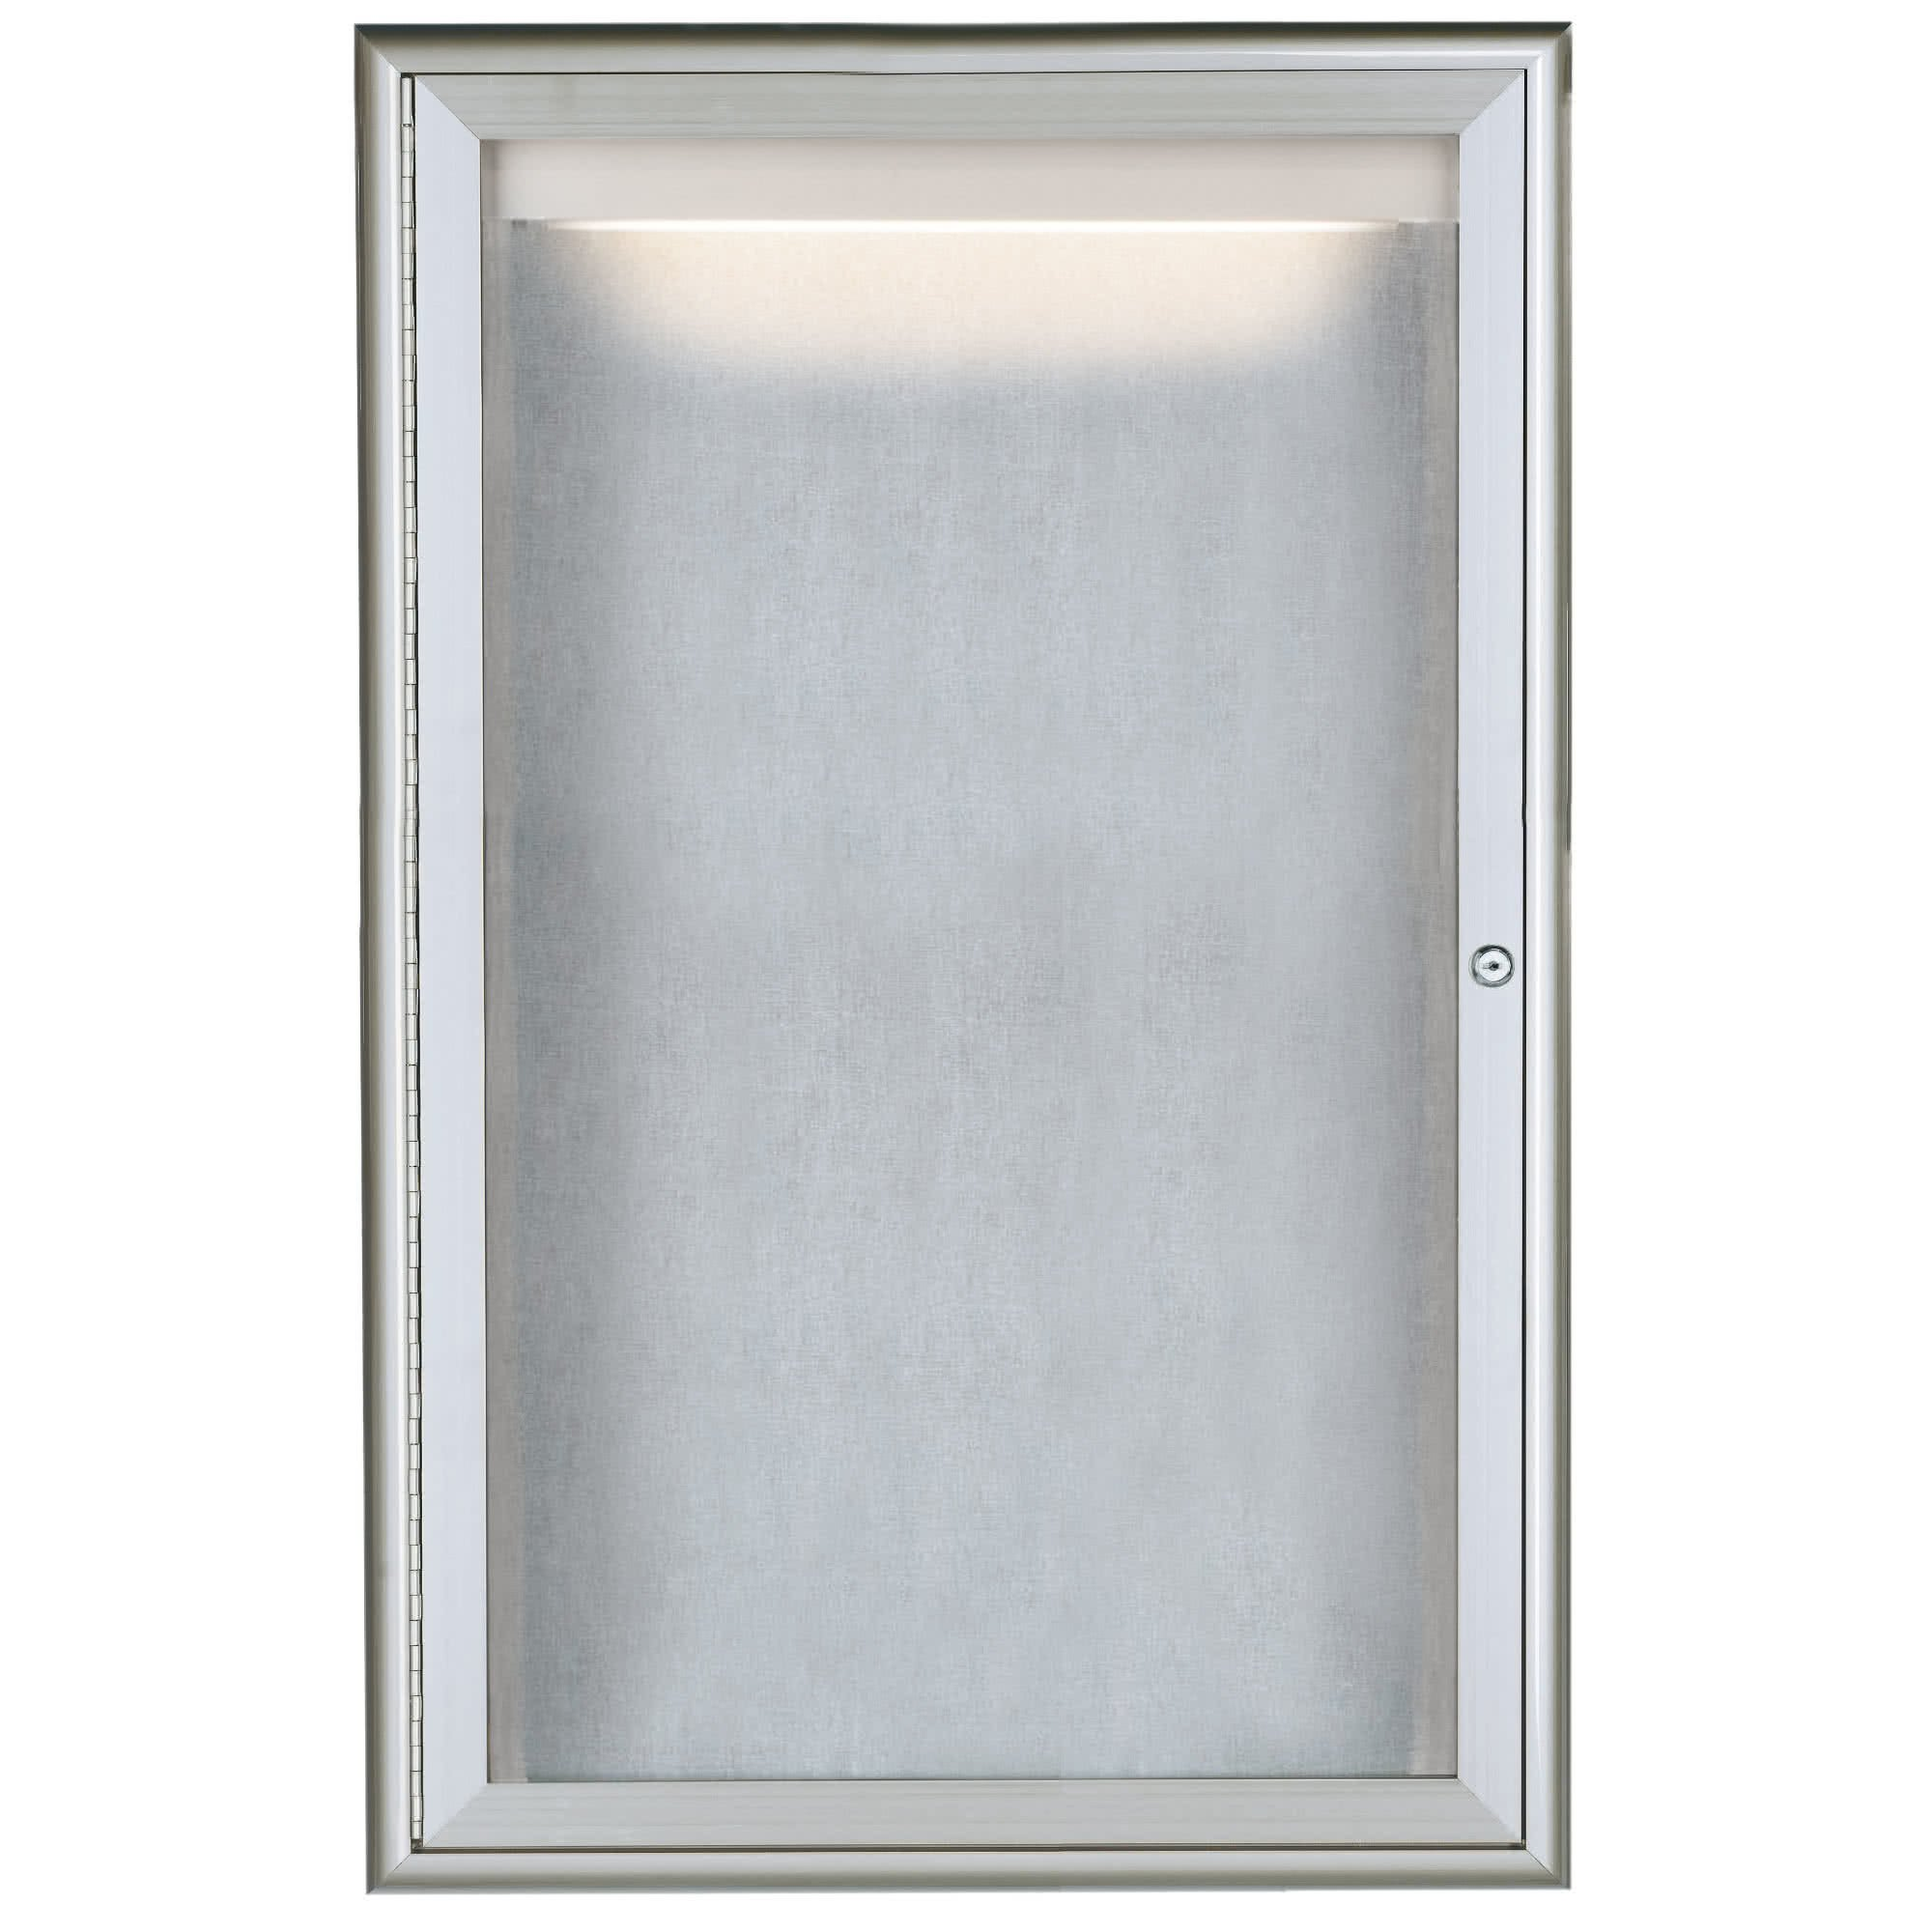 TableTop King LOWFC3624 36'' x 24'' Silver Enclosed Aluminum Indoor / Outdoor Bulletin Board with Waterfall Style Frame and LED Lighting